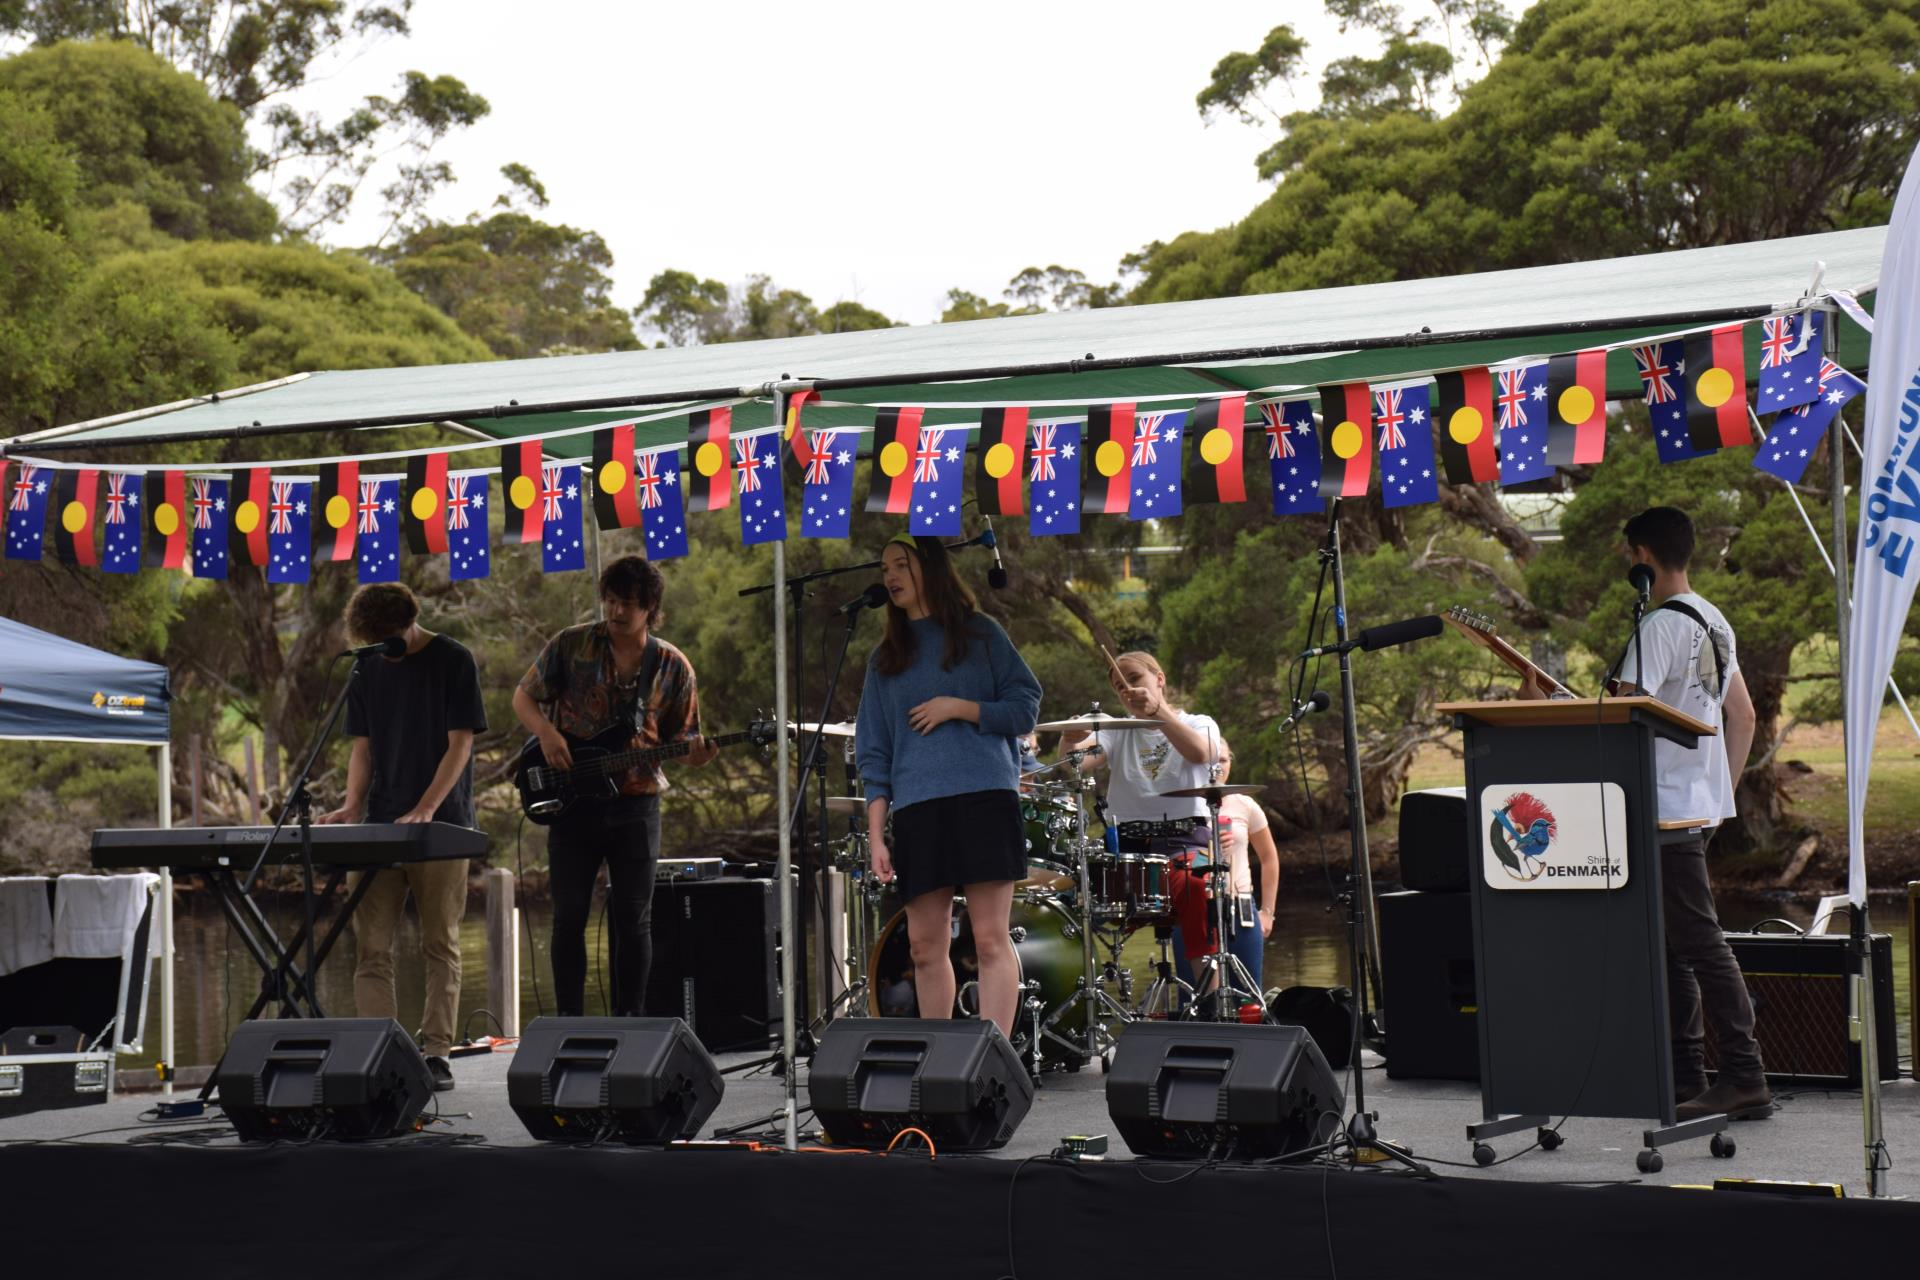 Play at the Australia Day 2021 community event!